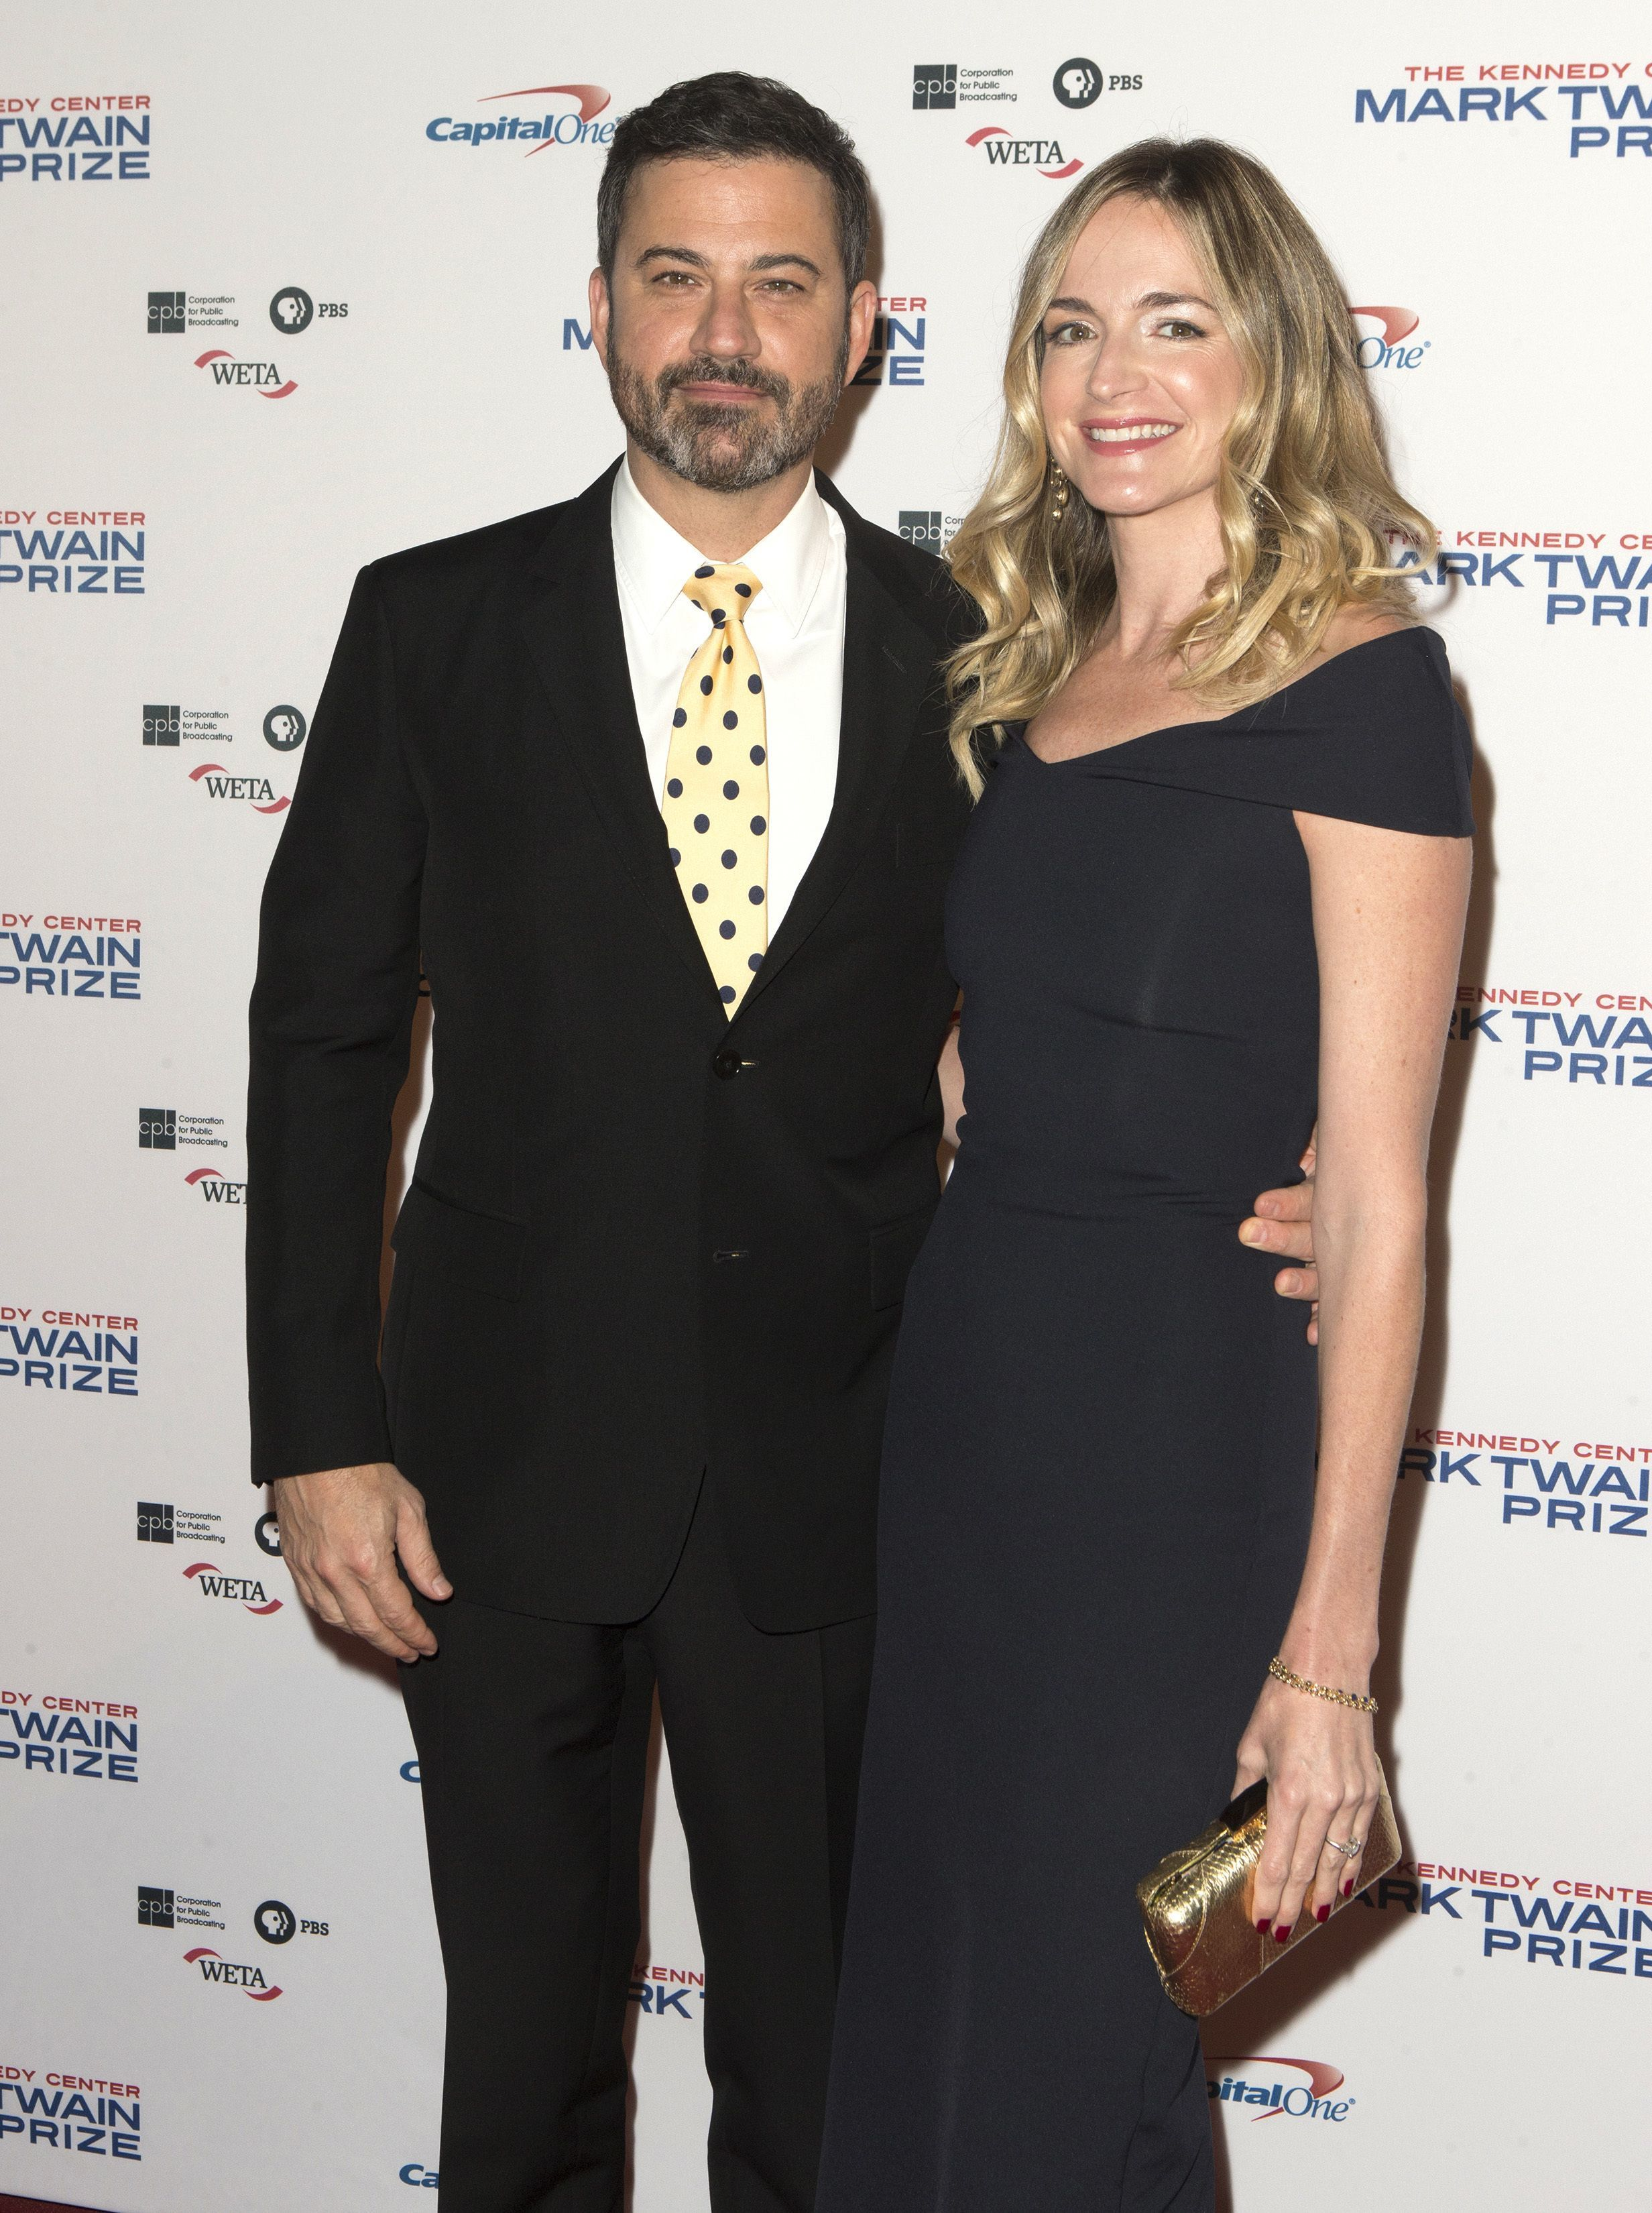 Jimmy Kimmel with his wife Molly McNearney arrive at the Kennedy Center for the Performing Arts for the 20th annual Mark Twain Prize for American Humor in Washington D.C. on Oct. 22, 2017.